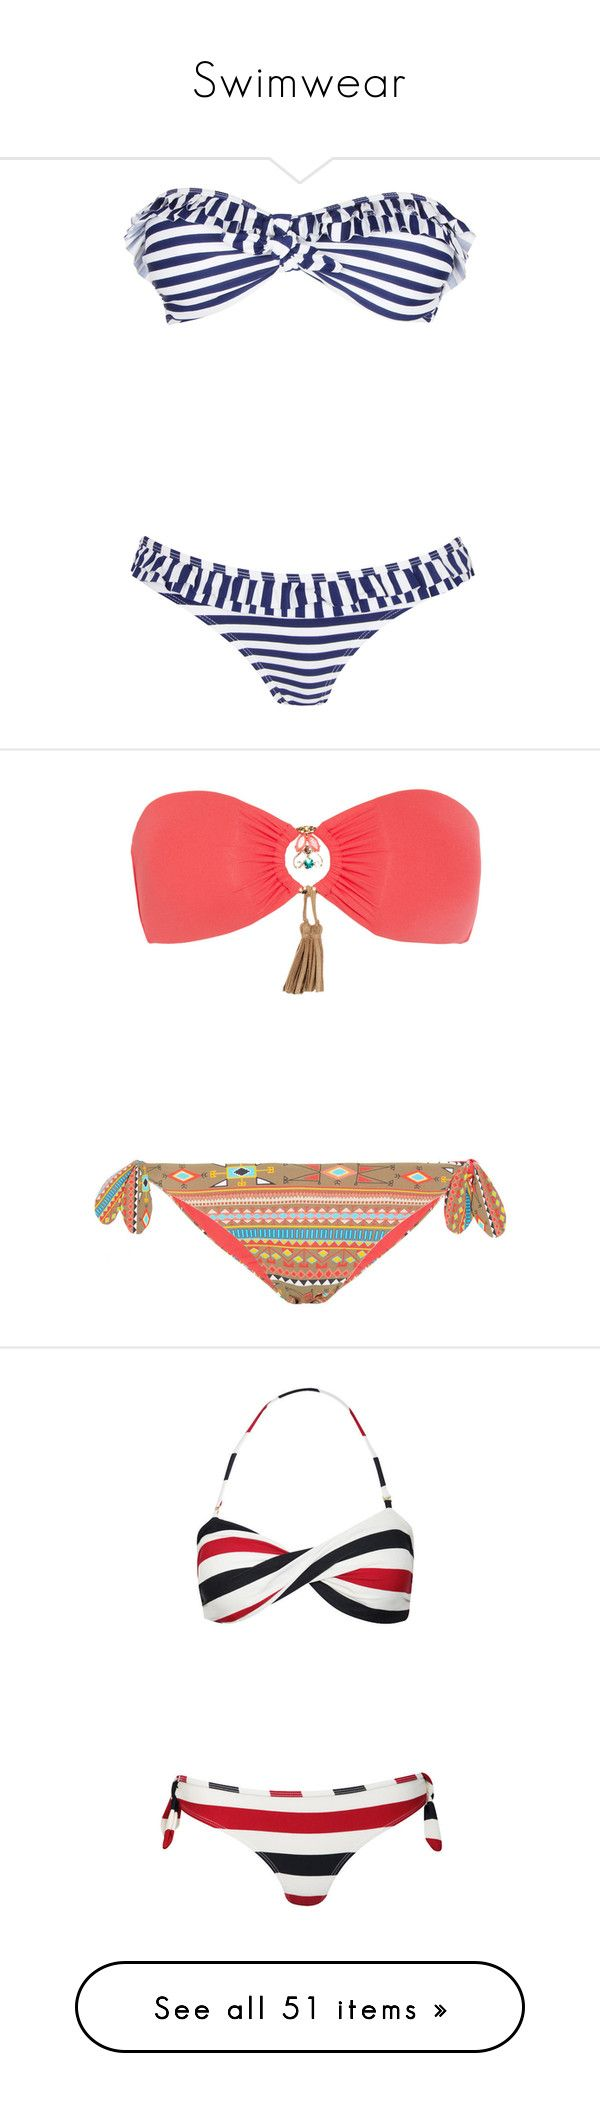 """""""Swimwear"""" by fabianluver-1 on Polyvore featuring swimwear, bikinis, swimsuits, bathing suits, swim, bikini swimsuit, hipster bikini bottoms, bandeau top bikini, bandeau bikinis and flounce bikini"""